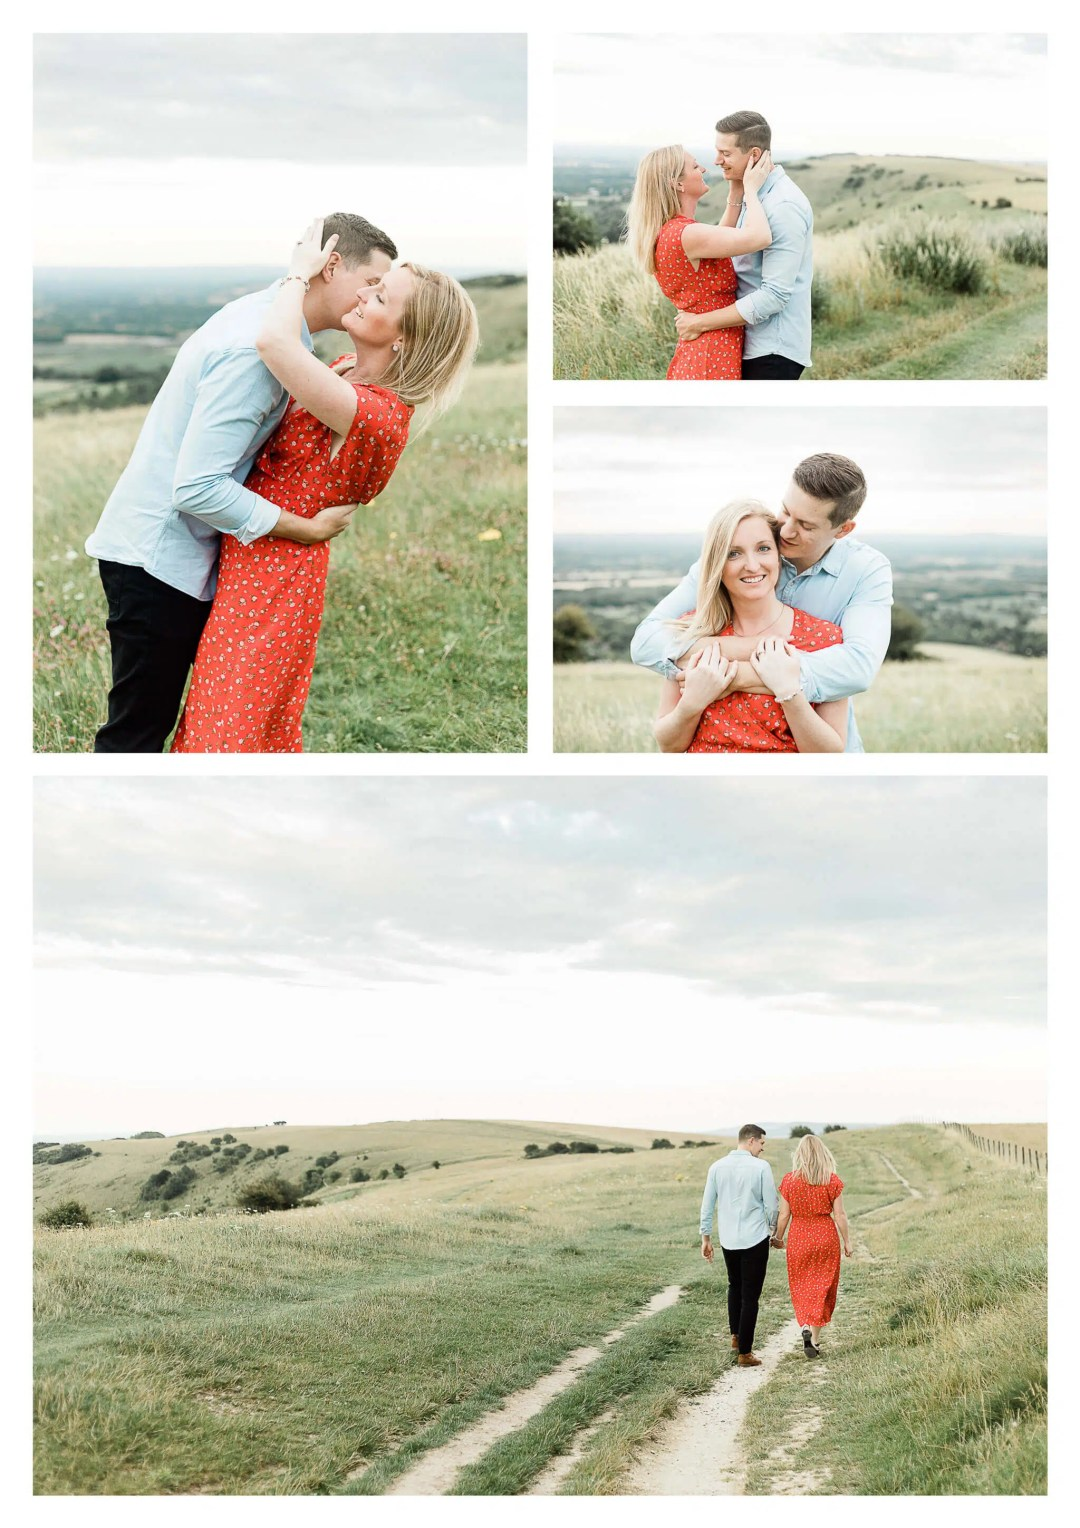 Ditchling Beacon engagement photography session on South Downs near Brighton